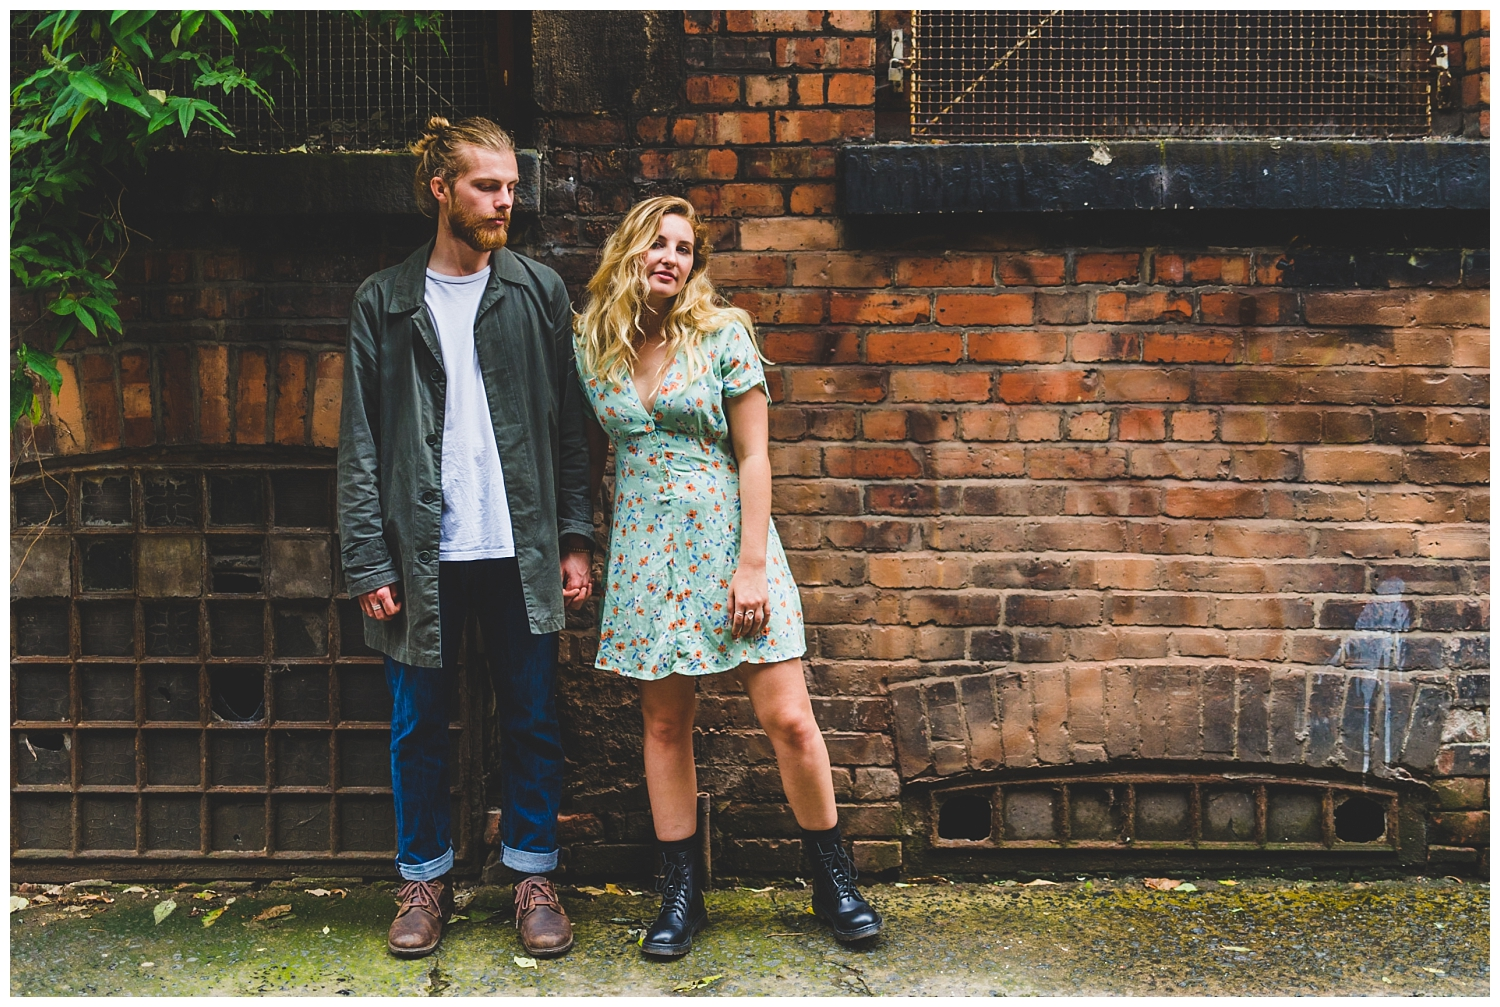 Northern Quarter couples photoshoot